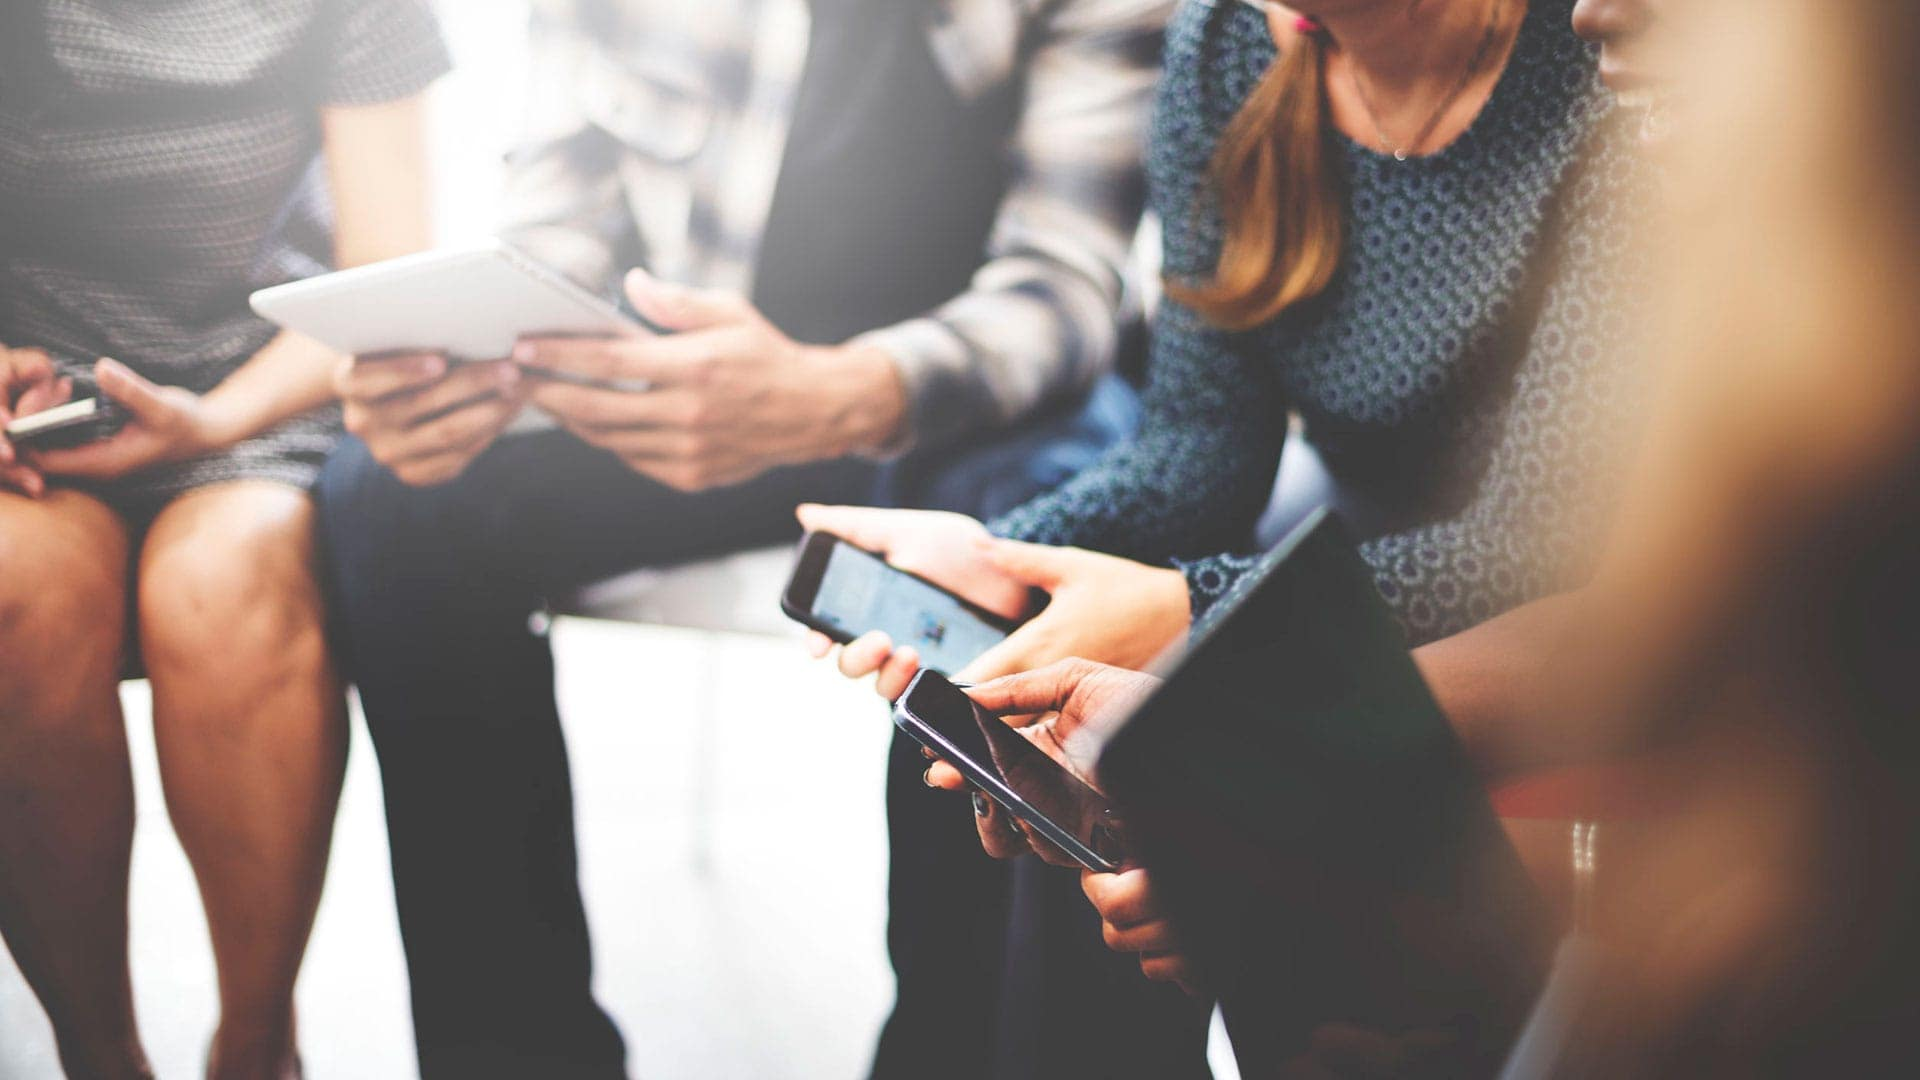 Here are the 7 Kinds of Digital Marketing You Need to Consider